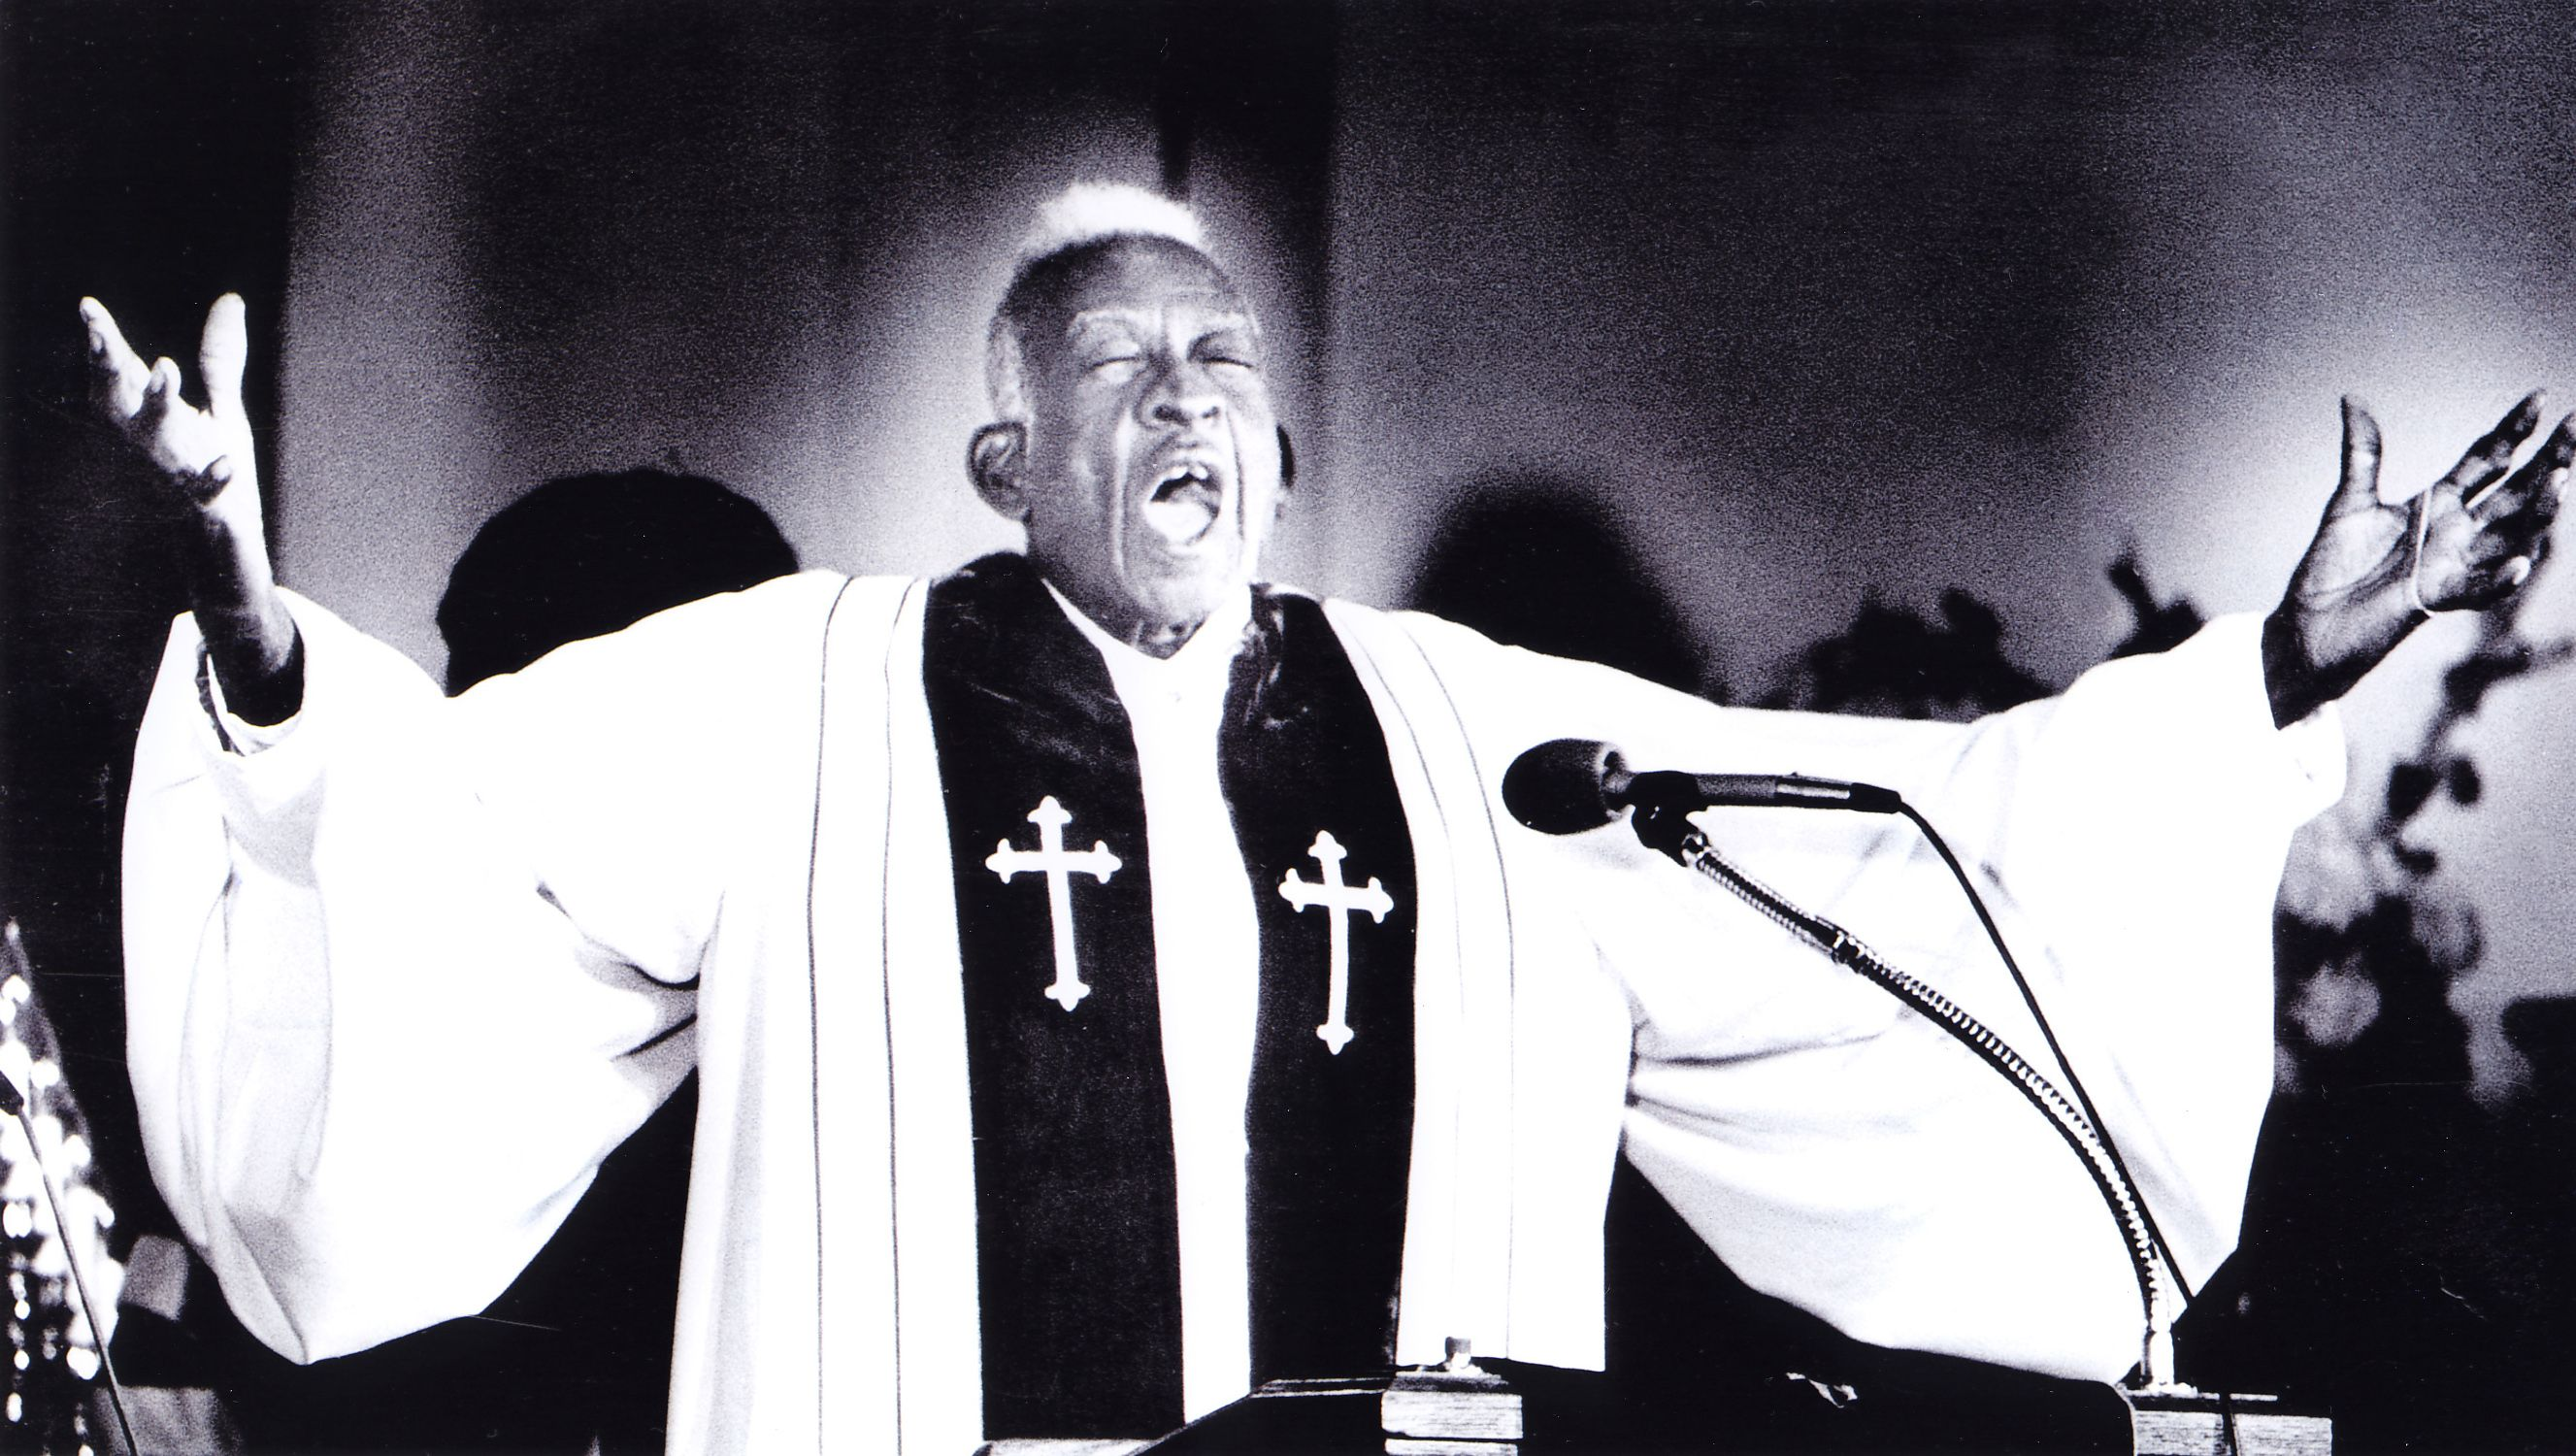 """Gospel singer Thomas Dorsey performing """"This Far by Faith"""" at Bible Way 